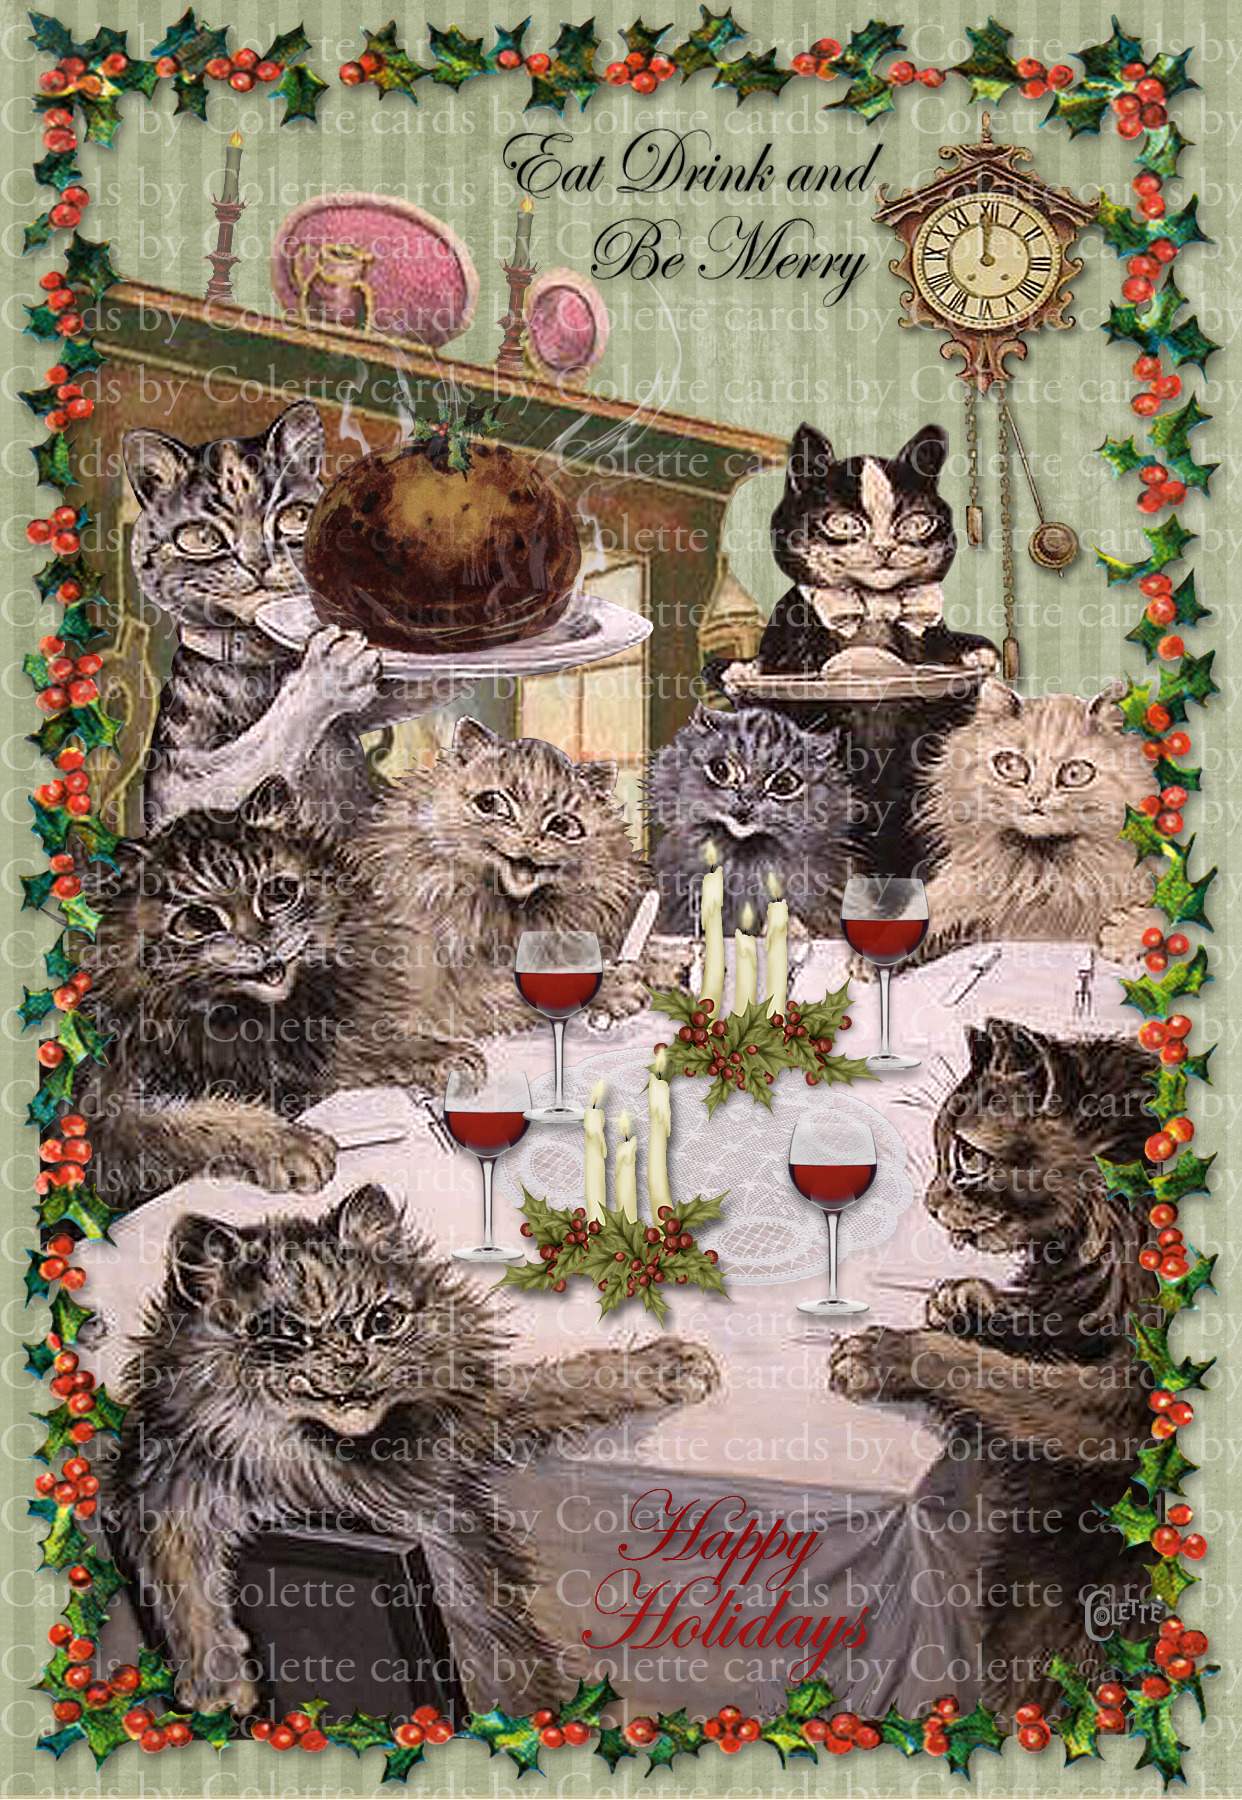 Eat Drink and Be Merry Digital Collage Greeting Card3100